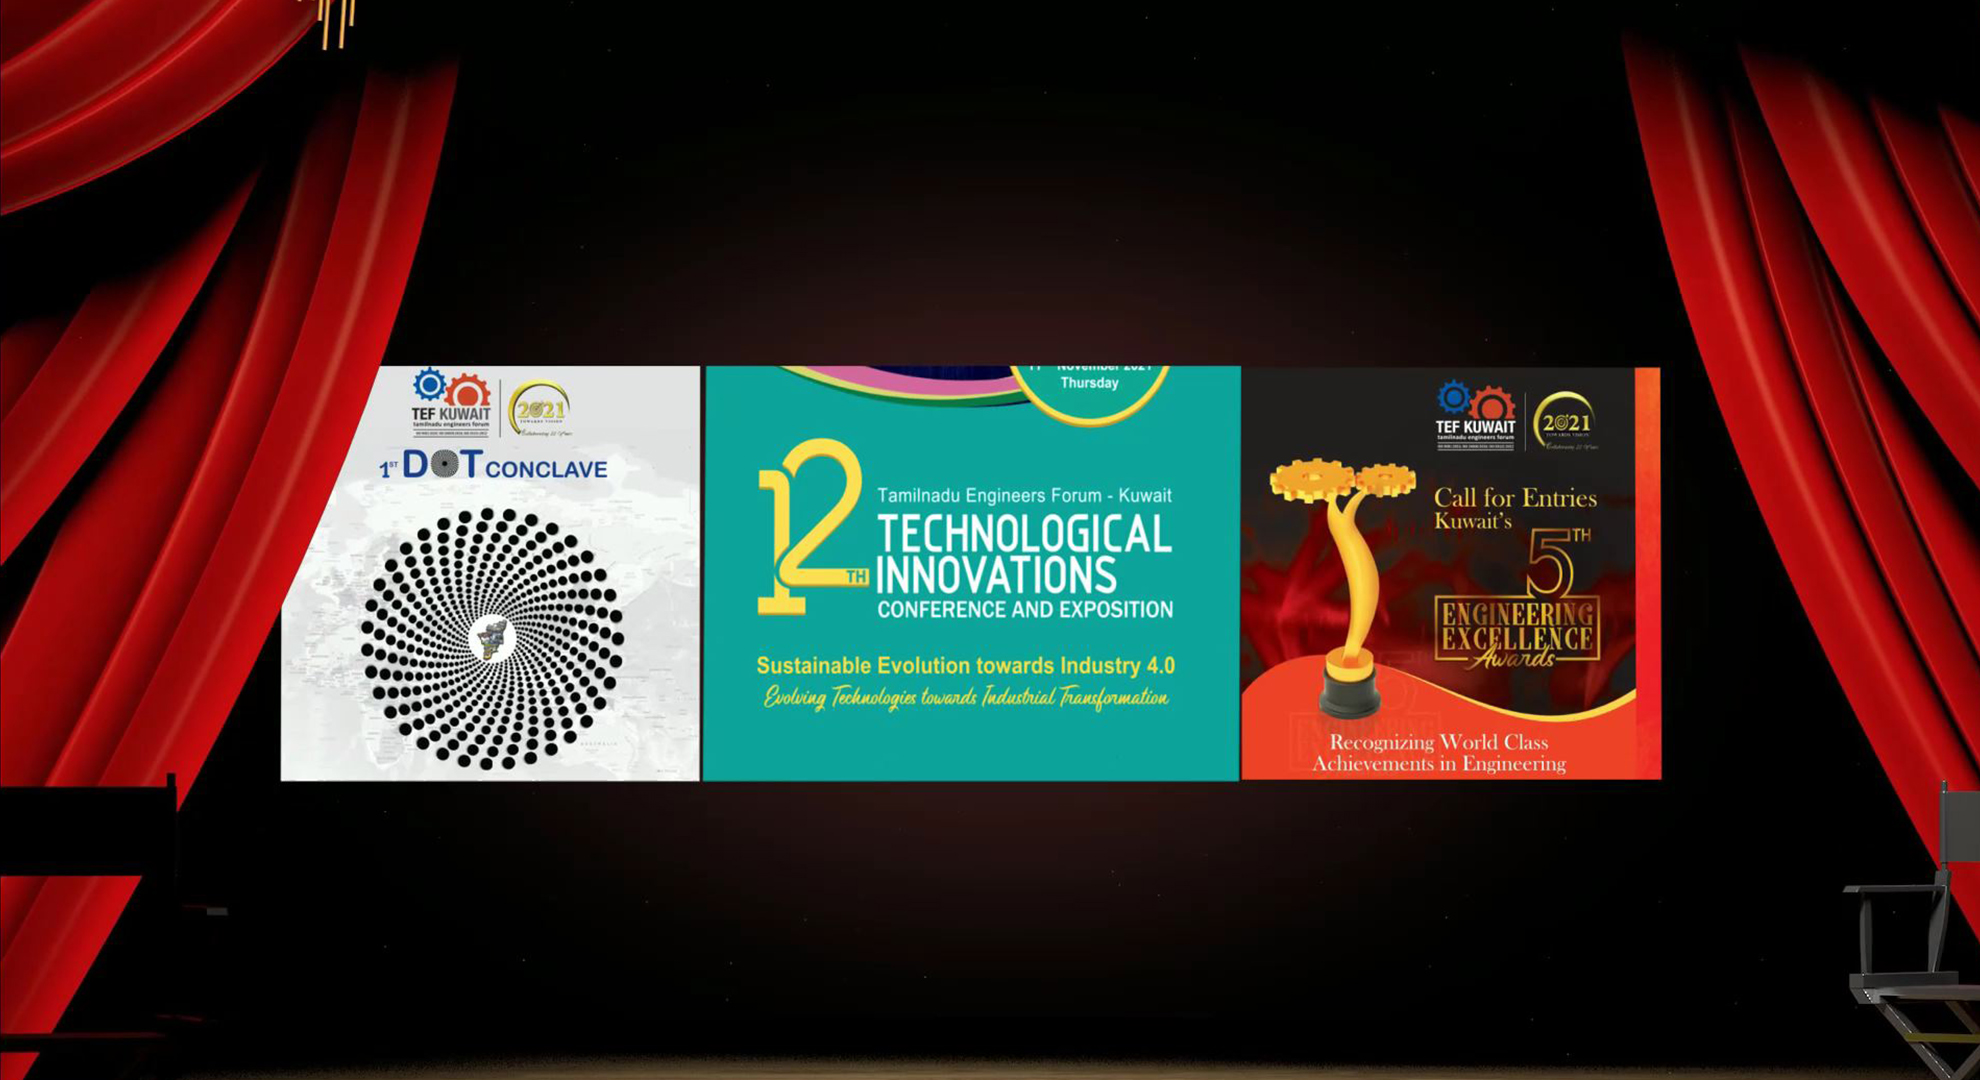 Tamilnadu Engineers Forum Hosts Curtain Raiser Event & Independence Day Cultural Competitions